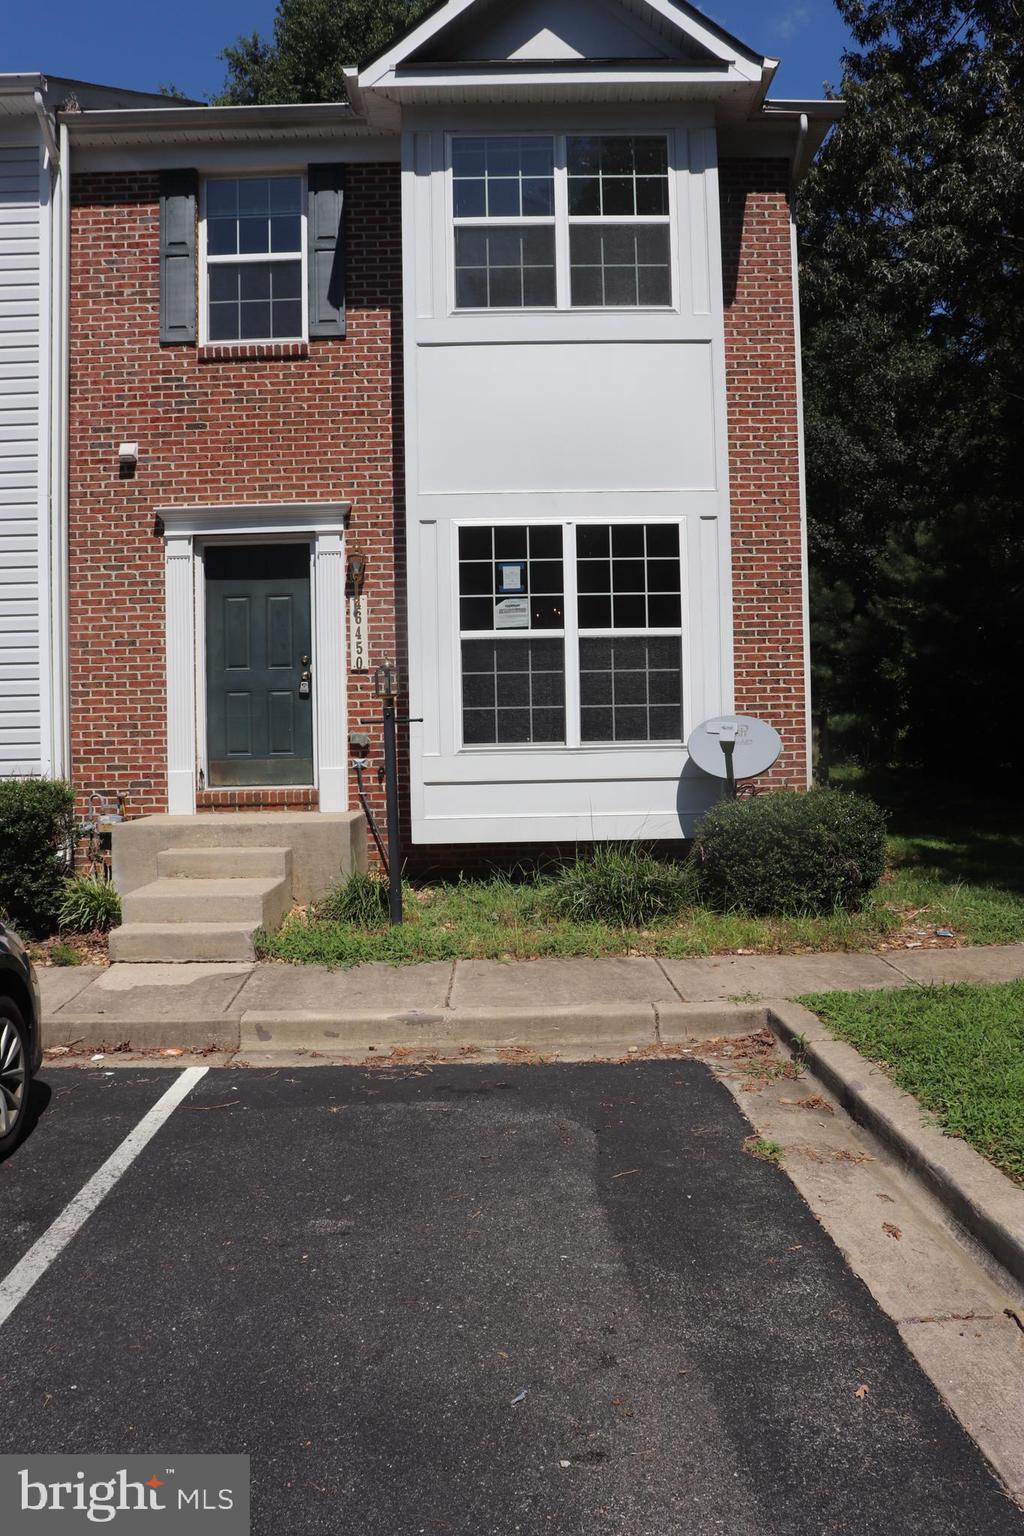 NEW IMPROVED PRICE!!! Nice Brick front town home end unit awaits your finishing touches! Open foyer invites you into open and inviting living room / dining room combination. Continue from the open dining room will lead you into a large kitchen with black appliances, lots of cabinets and counter space, and a breakfast nook. Leave the kitchen and retire to the lower level family room. You will find a Full Bath as well as open floor plan to entertain that includes a fireplace and additional storage. Sliding doors lead to the fenced in back yard that backs to trees. Washer & Dryer also on basement level. Up to the 2nd level for three well kept bedrooms. The Master Bedroom has a nice walk in closet. Off of the Bedroom is the Master Bath with soaking tub, dual vanities, ceramic tile flooring, and separate shower. Don't let this one pass you by or you'll be sorry! Two parking spaces in front of home. Close major highways, shopping, and PAX Naval Air Station (a straight shot to Gate 1, NAS Pax, easiest commute to base!).